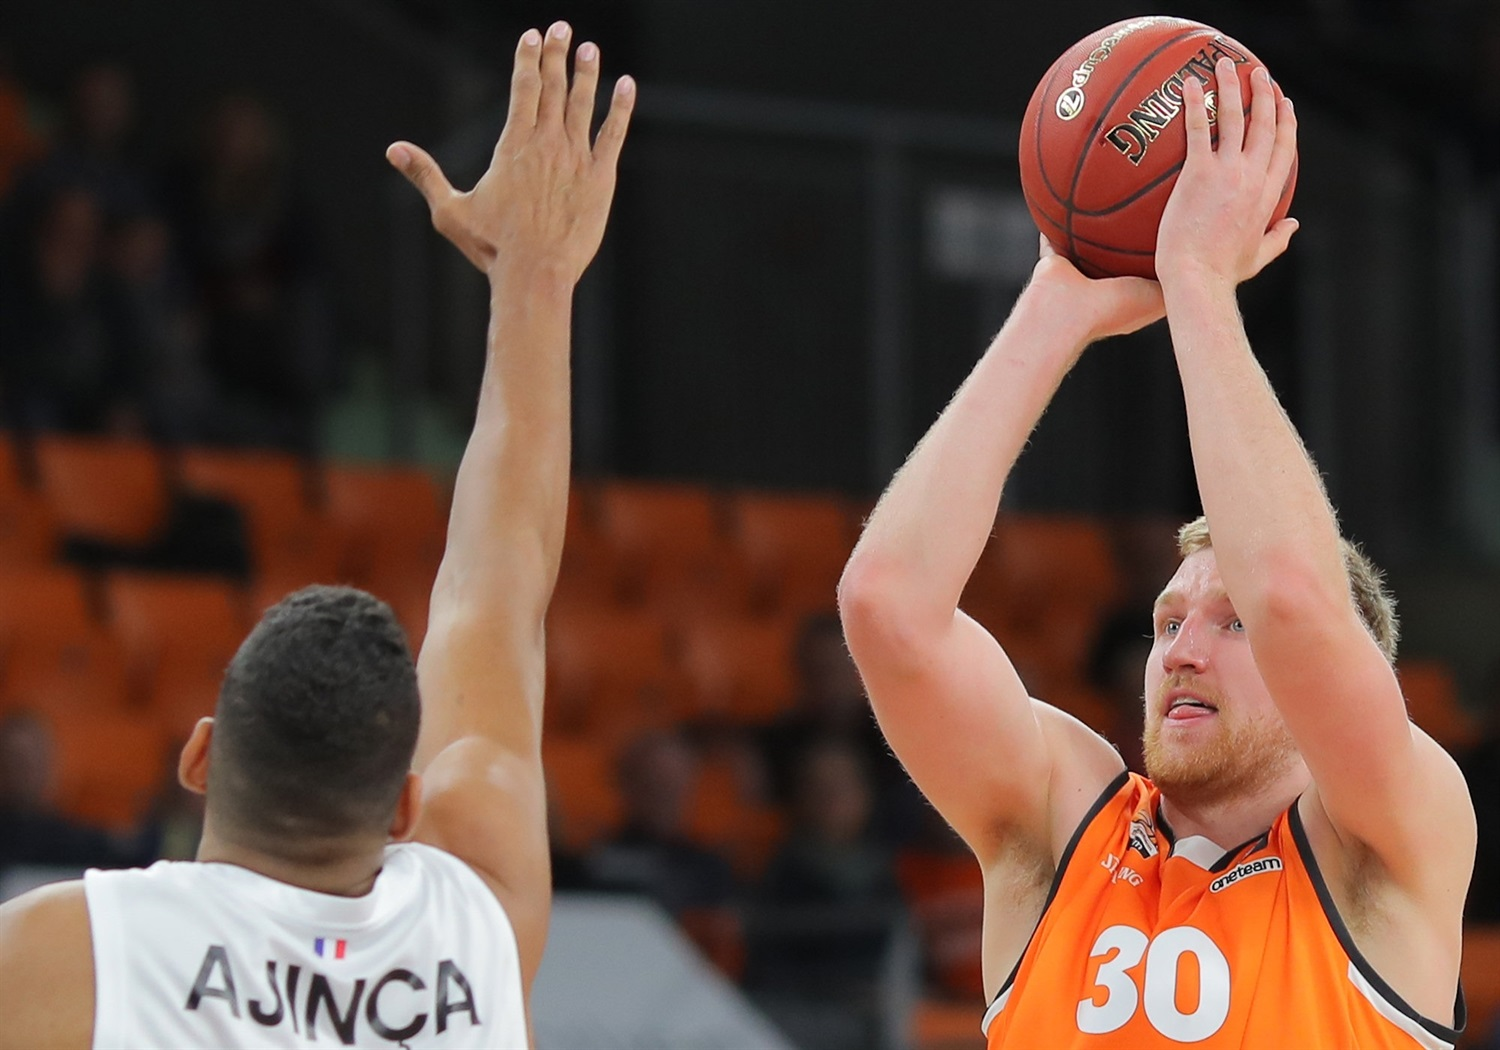 Maximilian Ugrai - ratiopharm Ulm (photo Ulm) - EC18